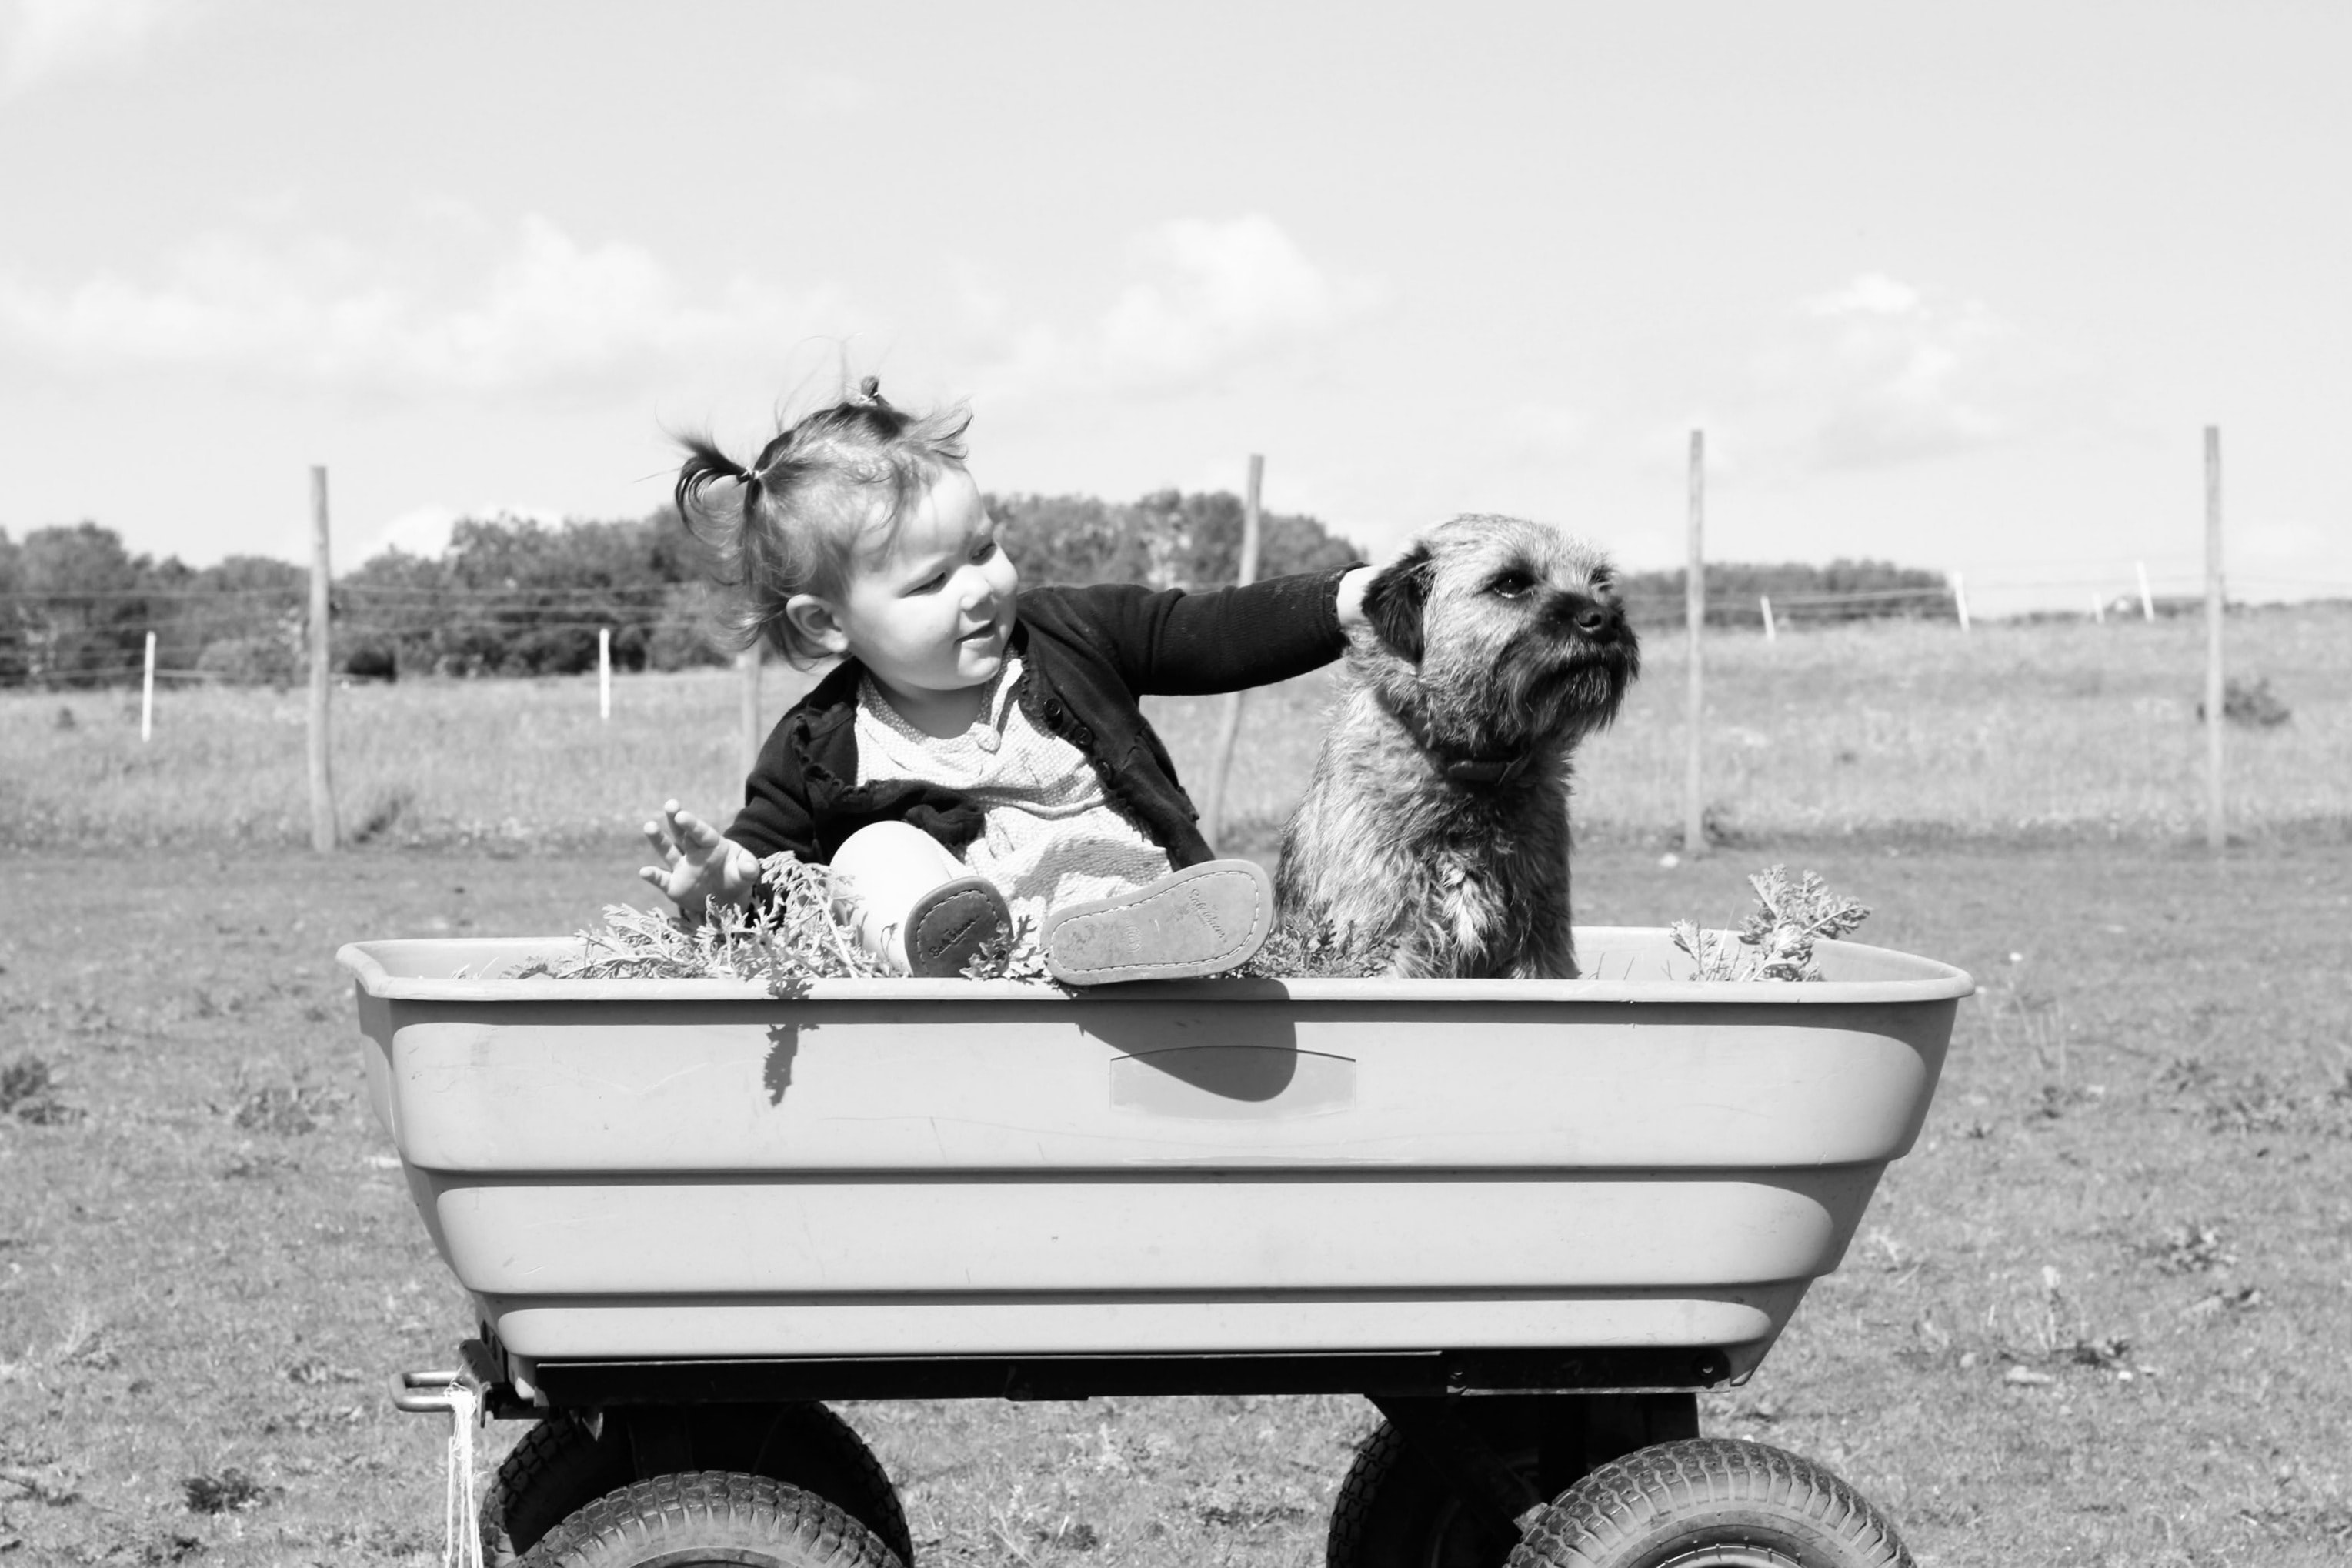 A little girl sitting in a wagon with a dog and plants